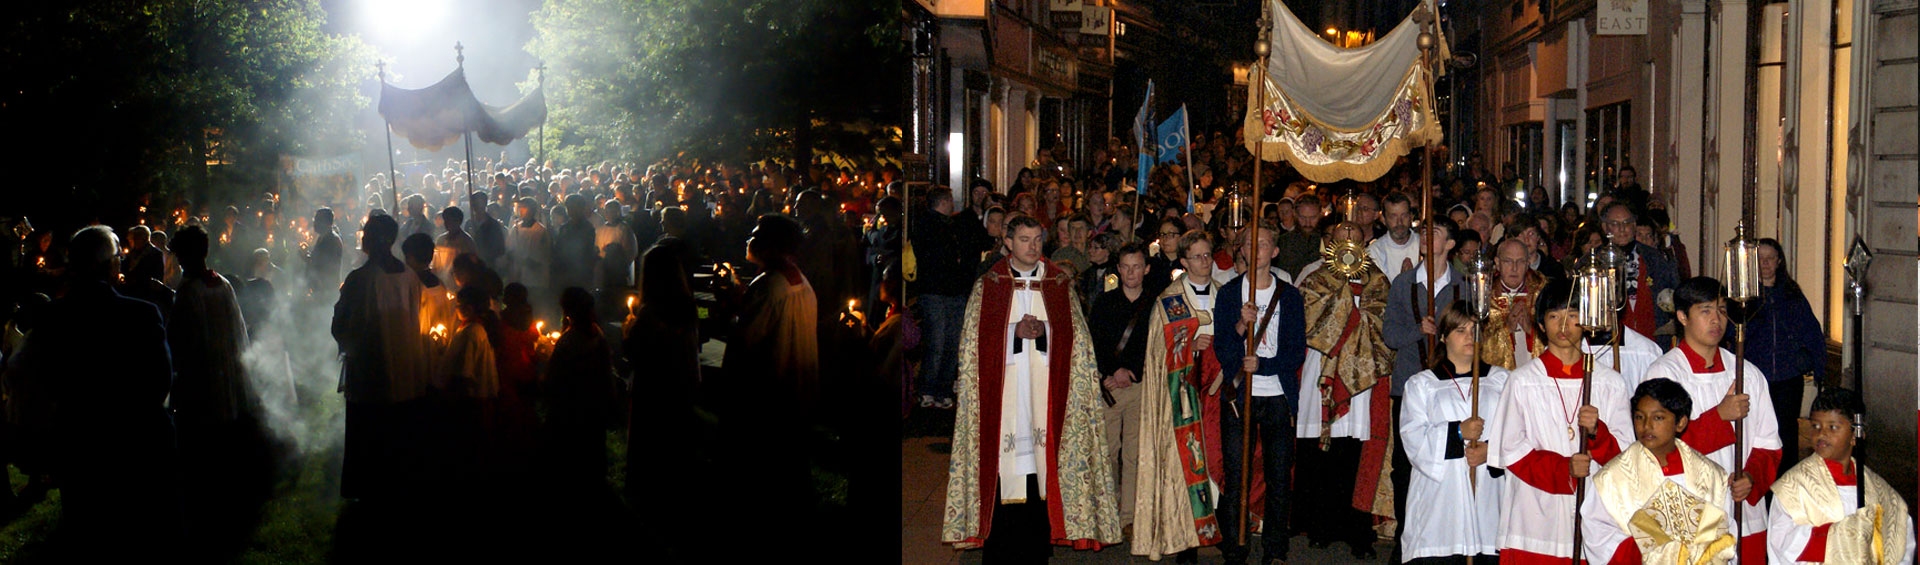 East-Anglia-Diocese-Procession-October-2015